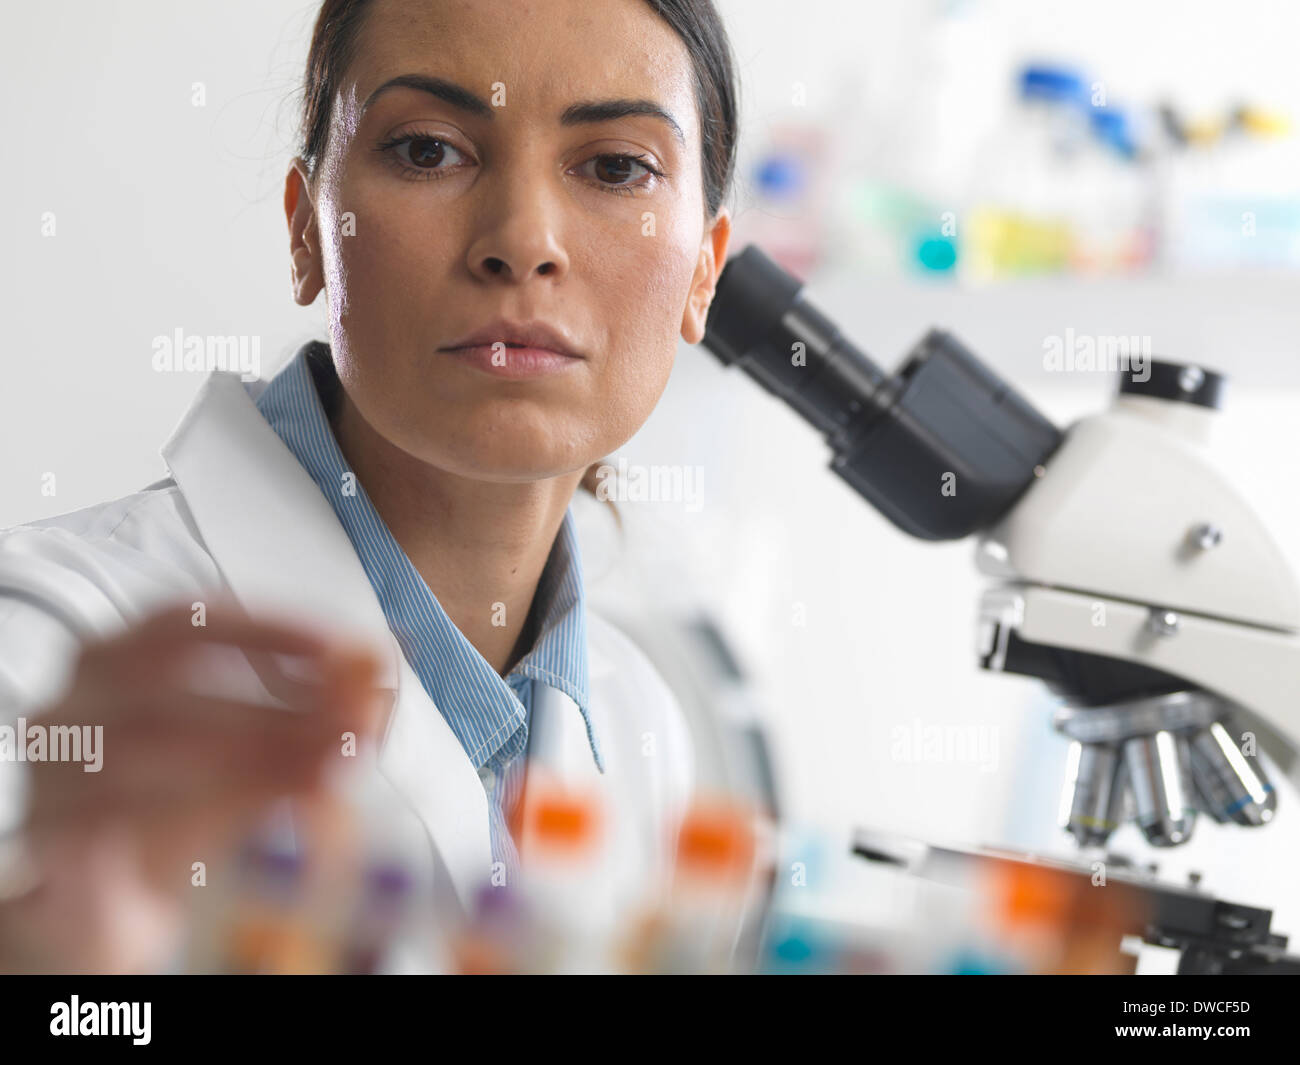 Female scientist about to view a blood sample under a microscope - Stock Image